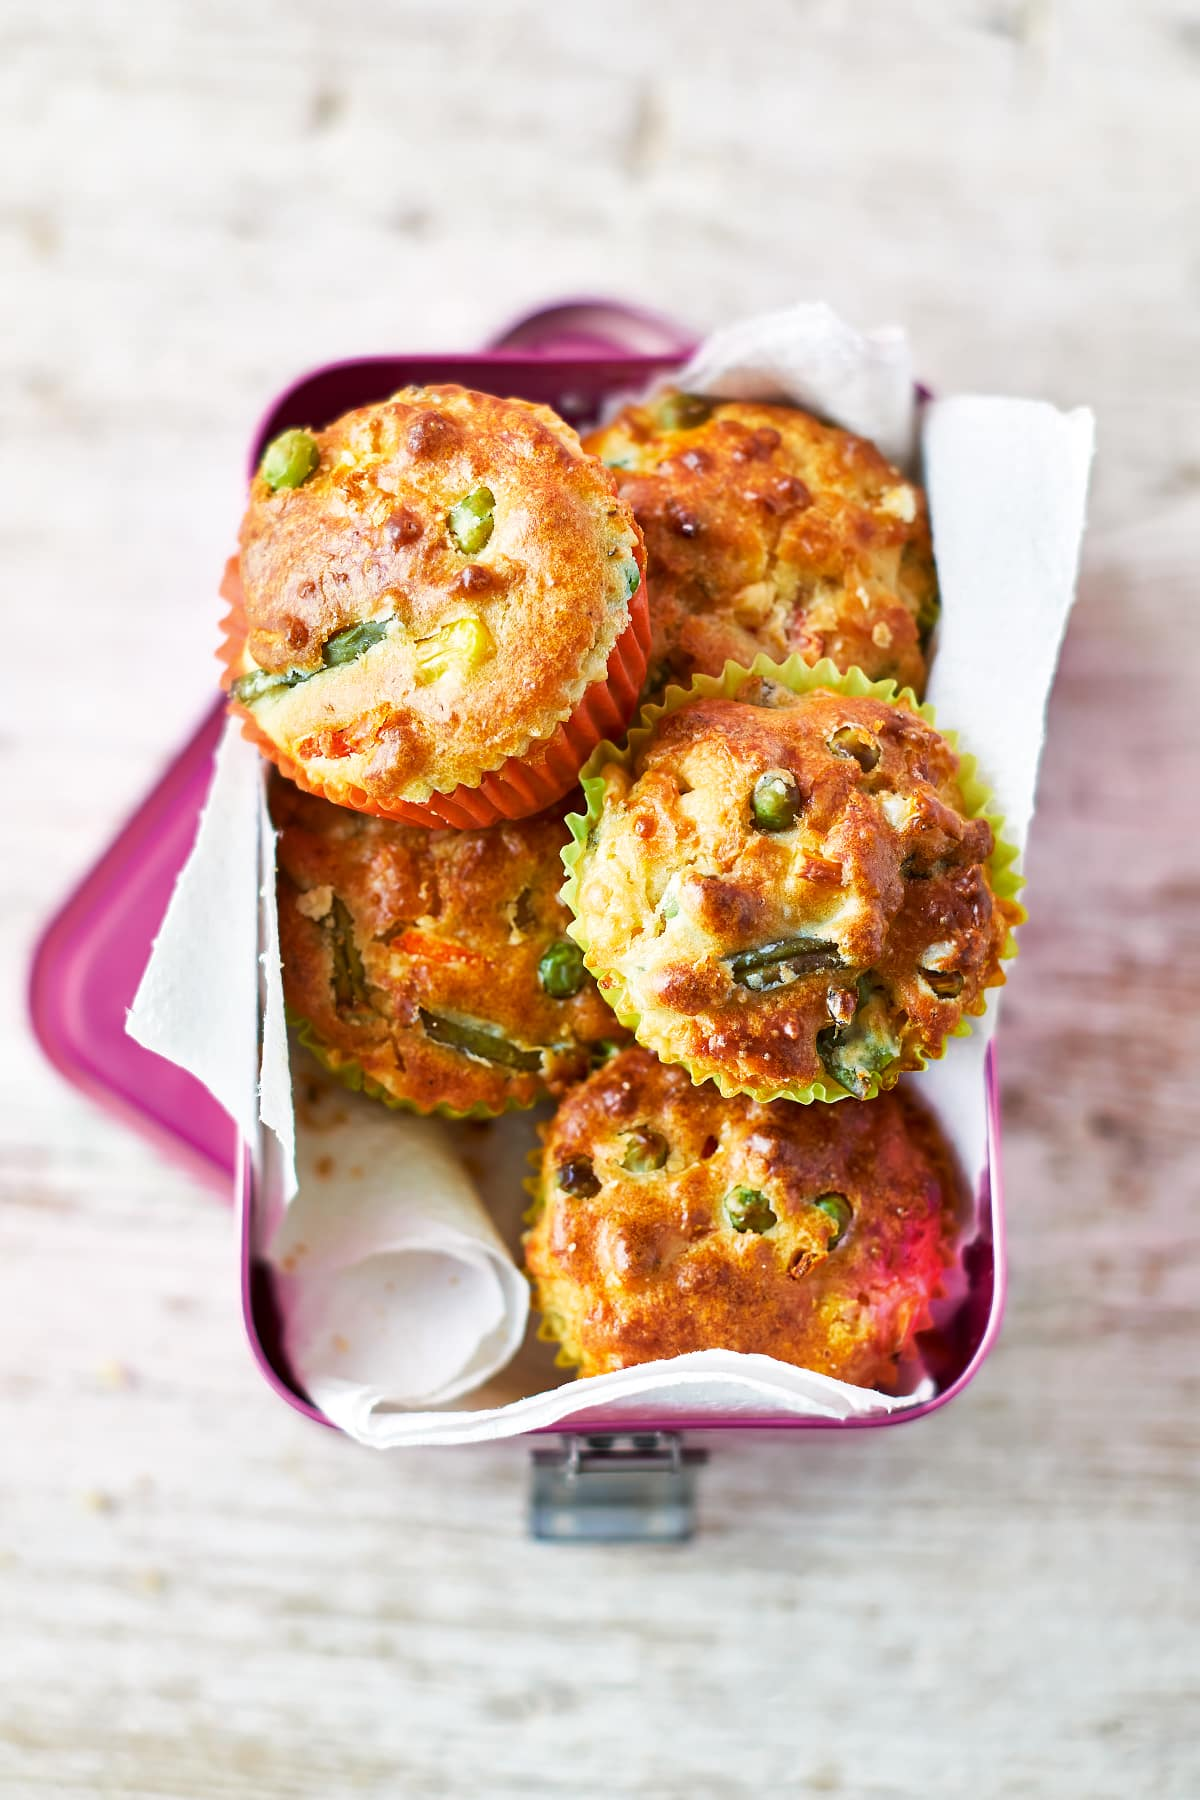 A pink lunchbox lined with paper, filled with savoury vegetable muffins. The muffins are in multicoloured cases and the tops are studded with carrots, peas, beans and sweetcorn.